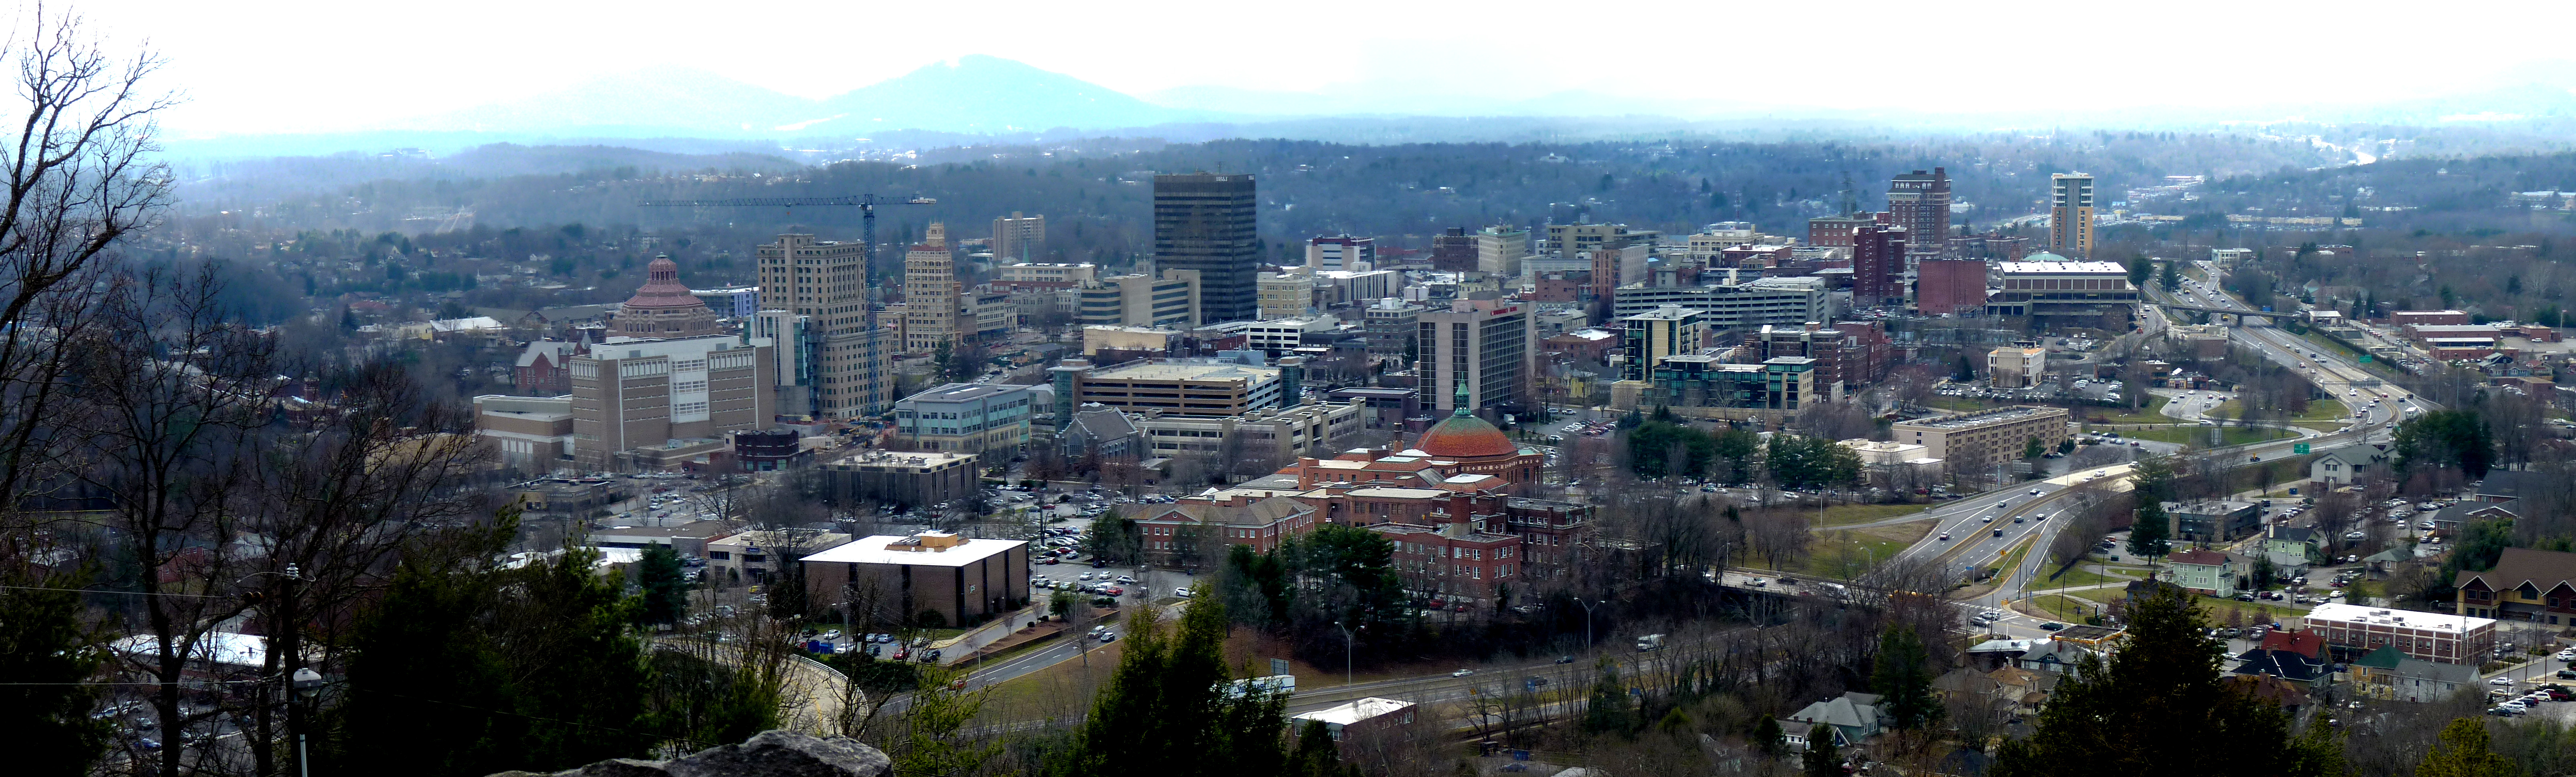 File:Asheville Downtown panorama.jpg - Wikimedia Commons